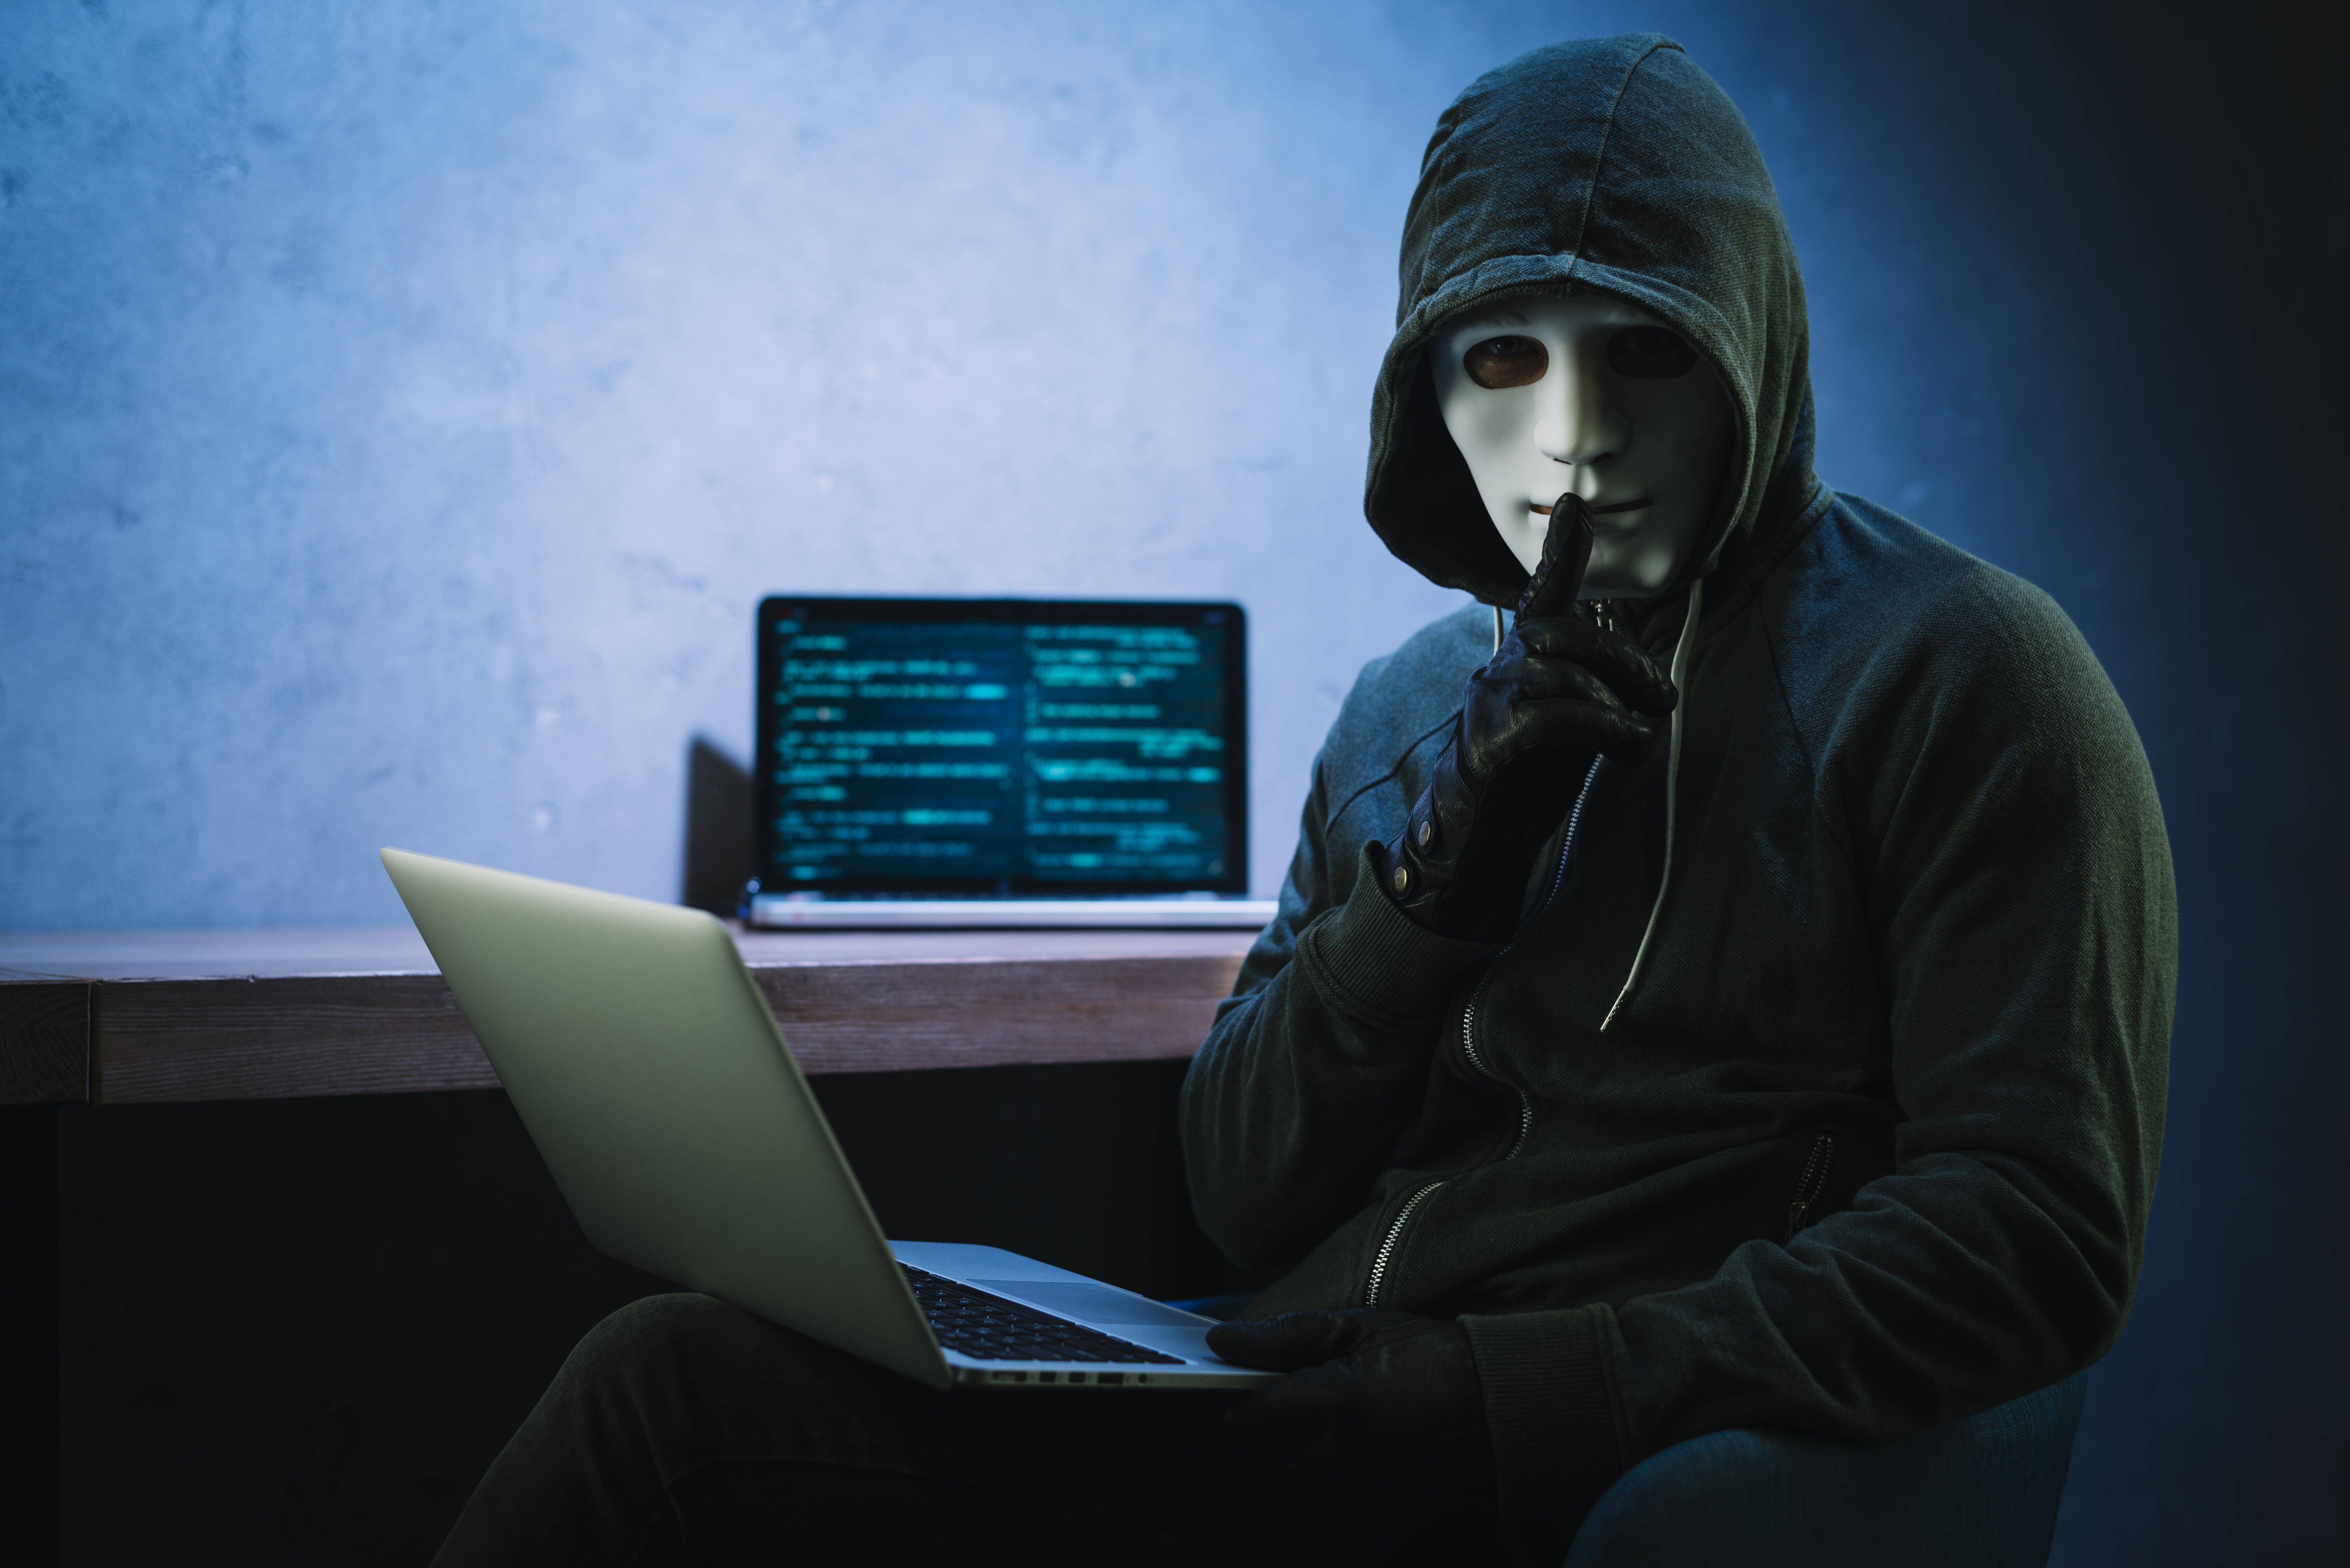 Penetration Testing Interview Questions and Answers to Hire Ethical Hackers